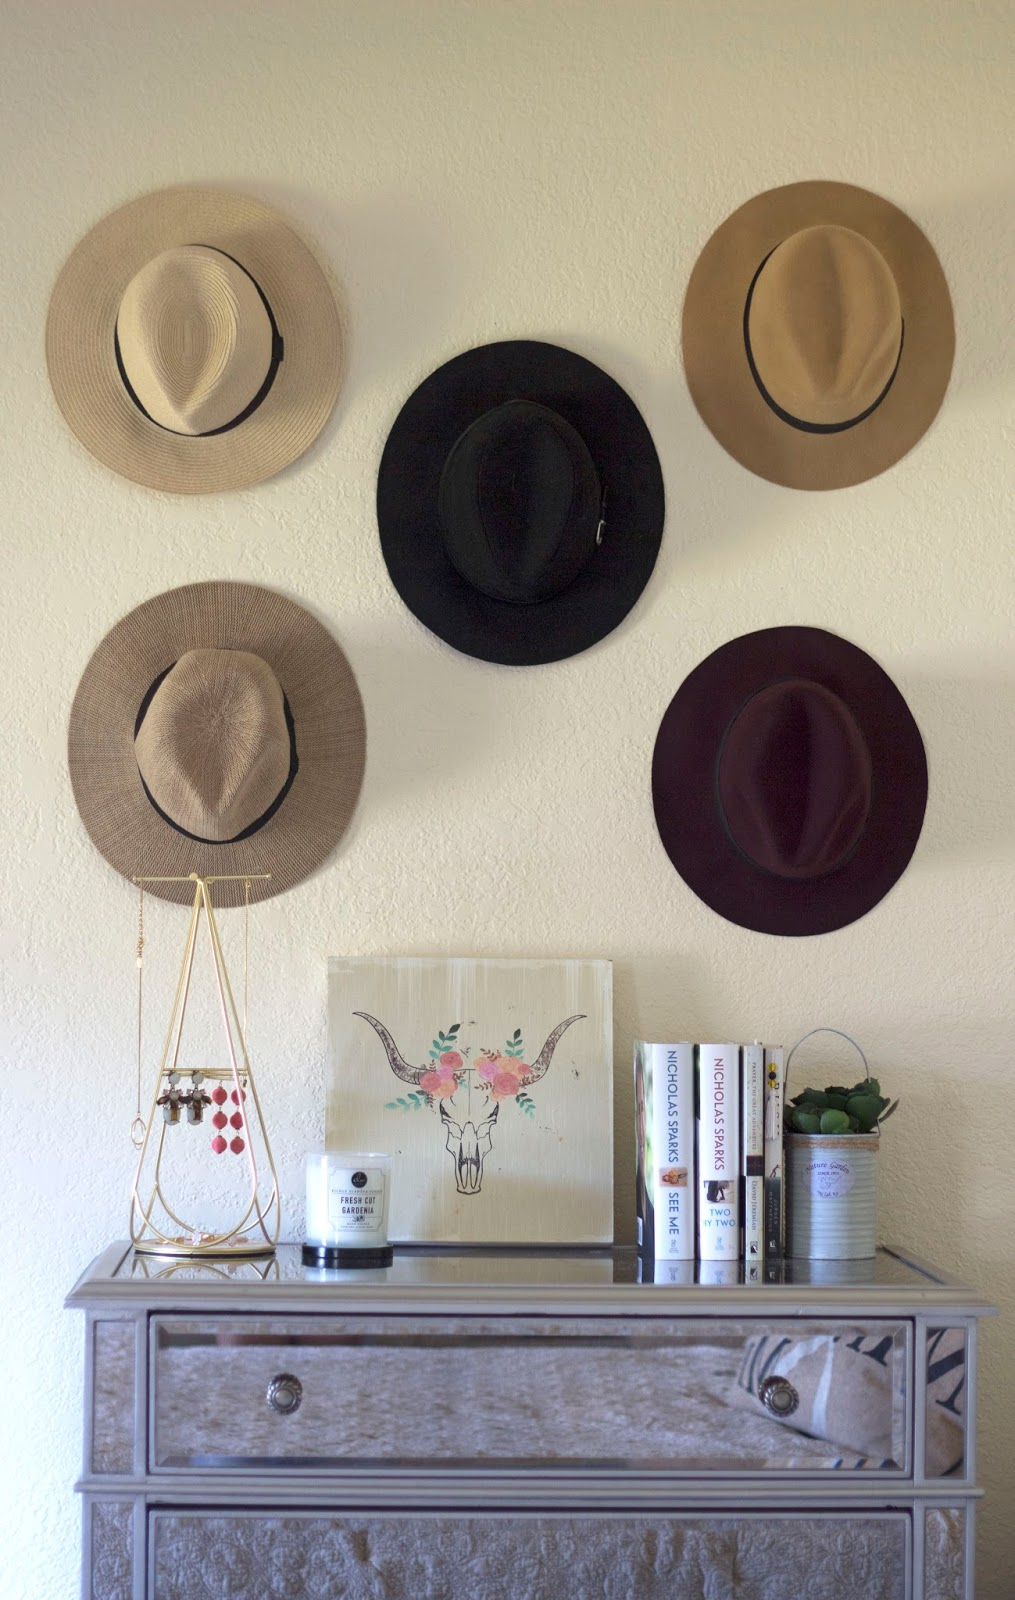 Hats On The Wall